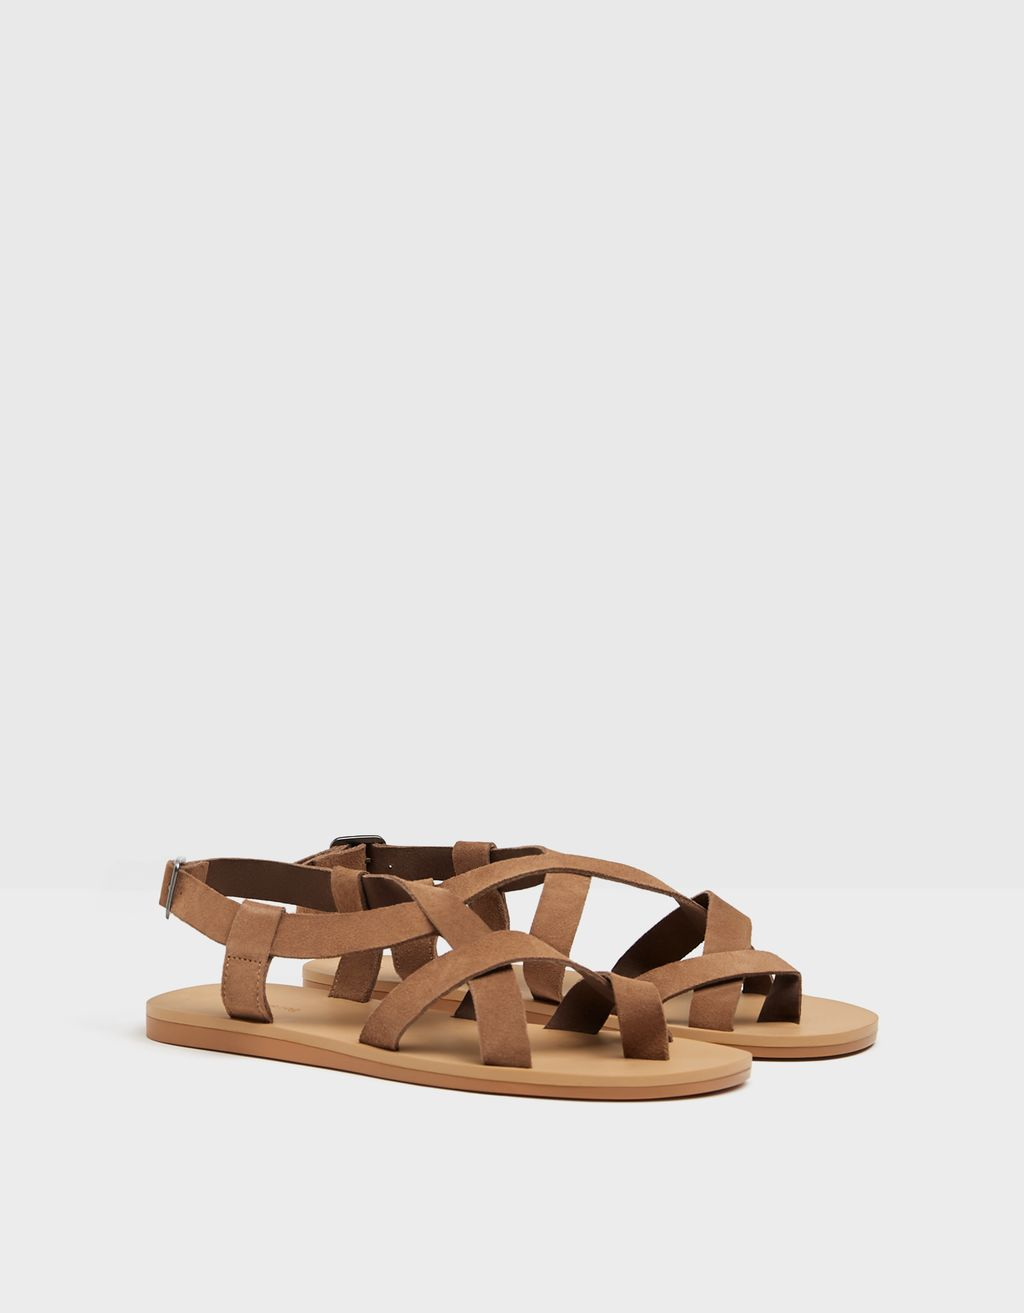 Men's strappy LEATHER sandals.